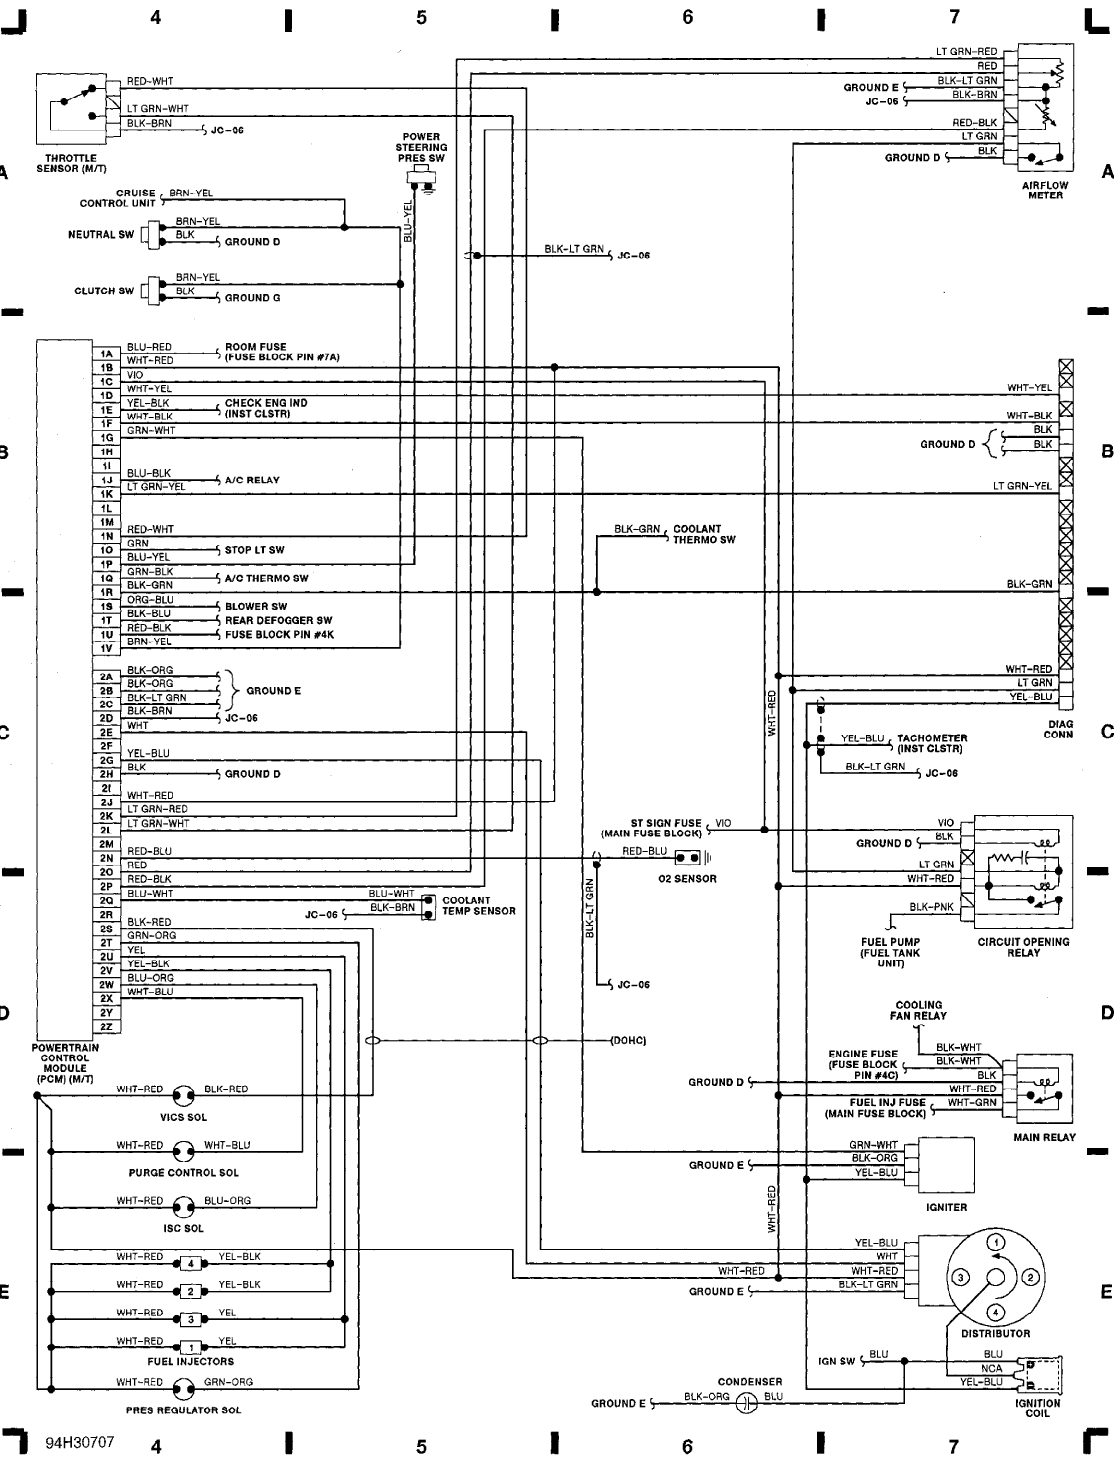 2017 Hyundai Elantra Radio Wiring Diagram from i0.wp.com